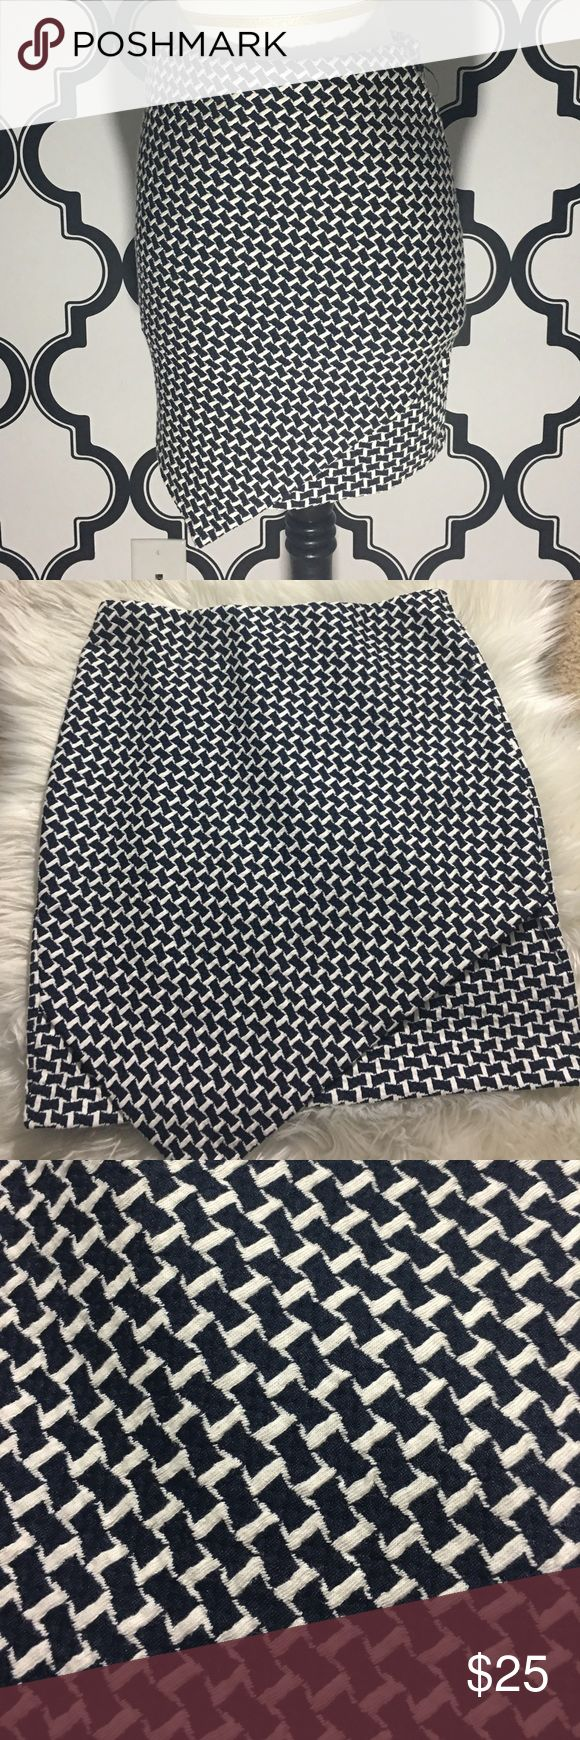 Navy Blue and White Skirt Brand NEW Navy Blue and White checkered skirt Never worn  Excellent Condition size small H & M Skirts Mini